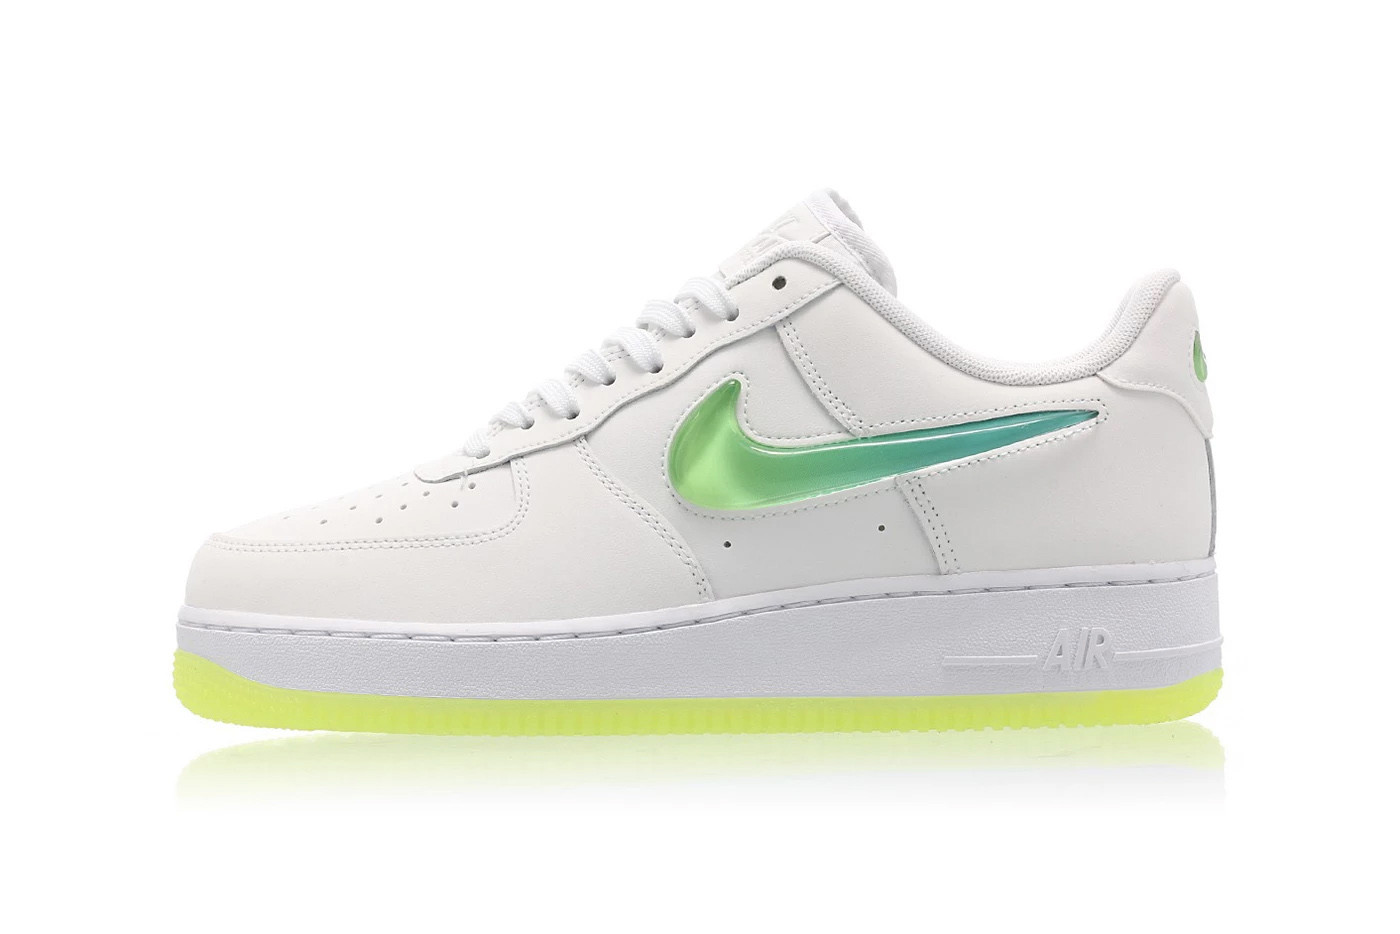 bd5ca8bb67a1 Nike Air Force 1 Best Spring Releases Sneaker Shoe Where To Buy Pink White  Yellow Green